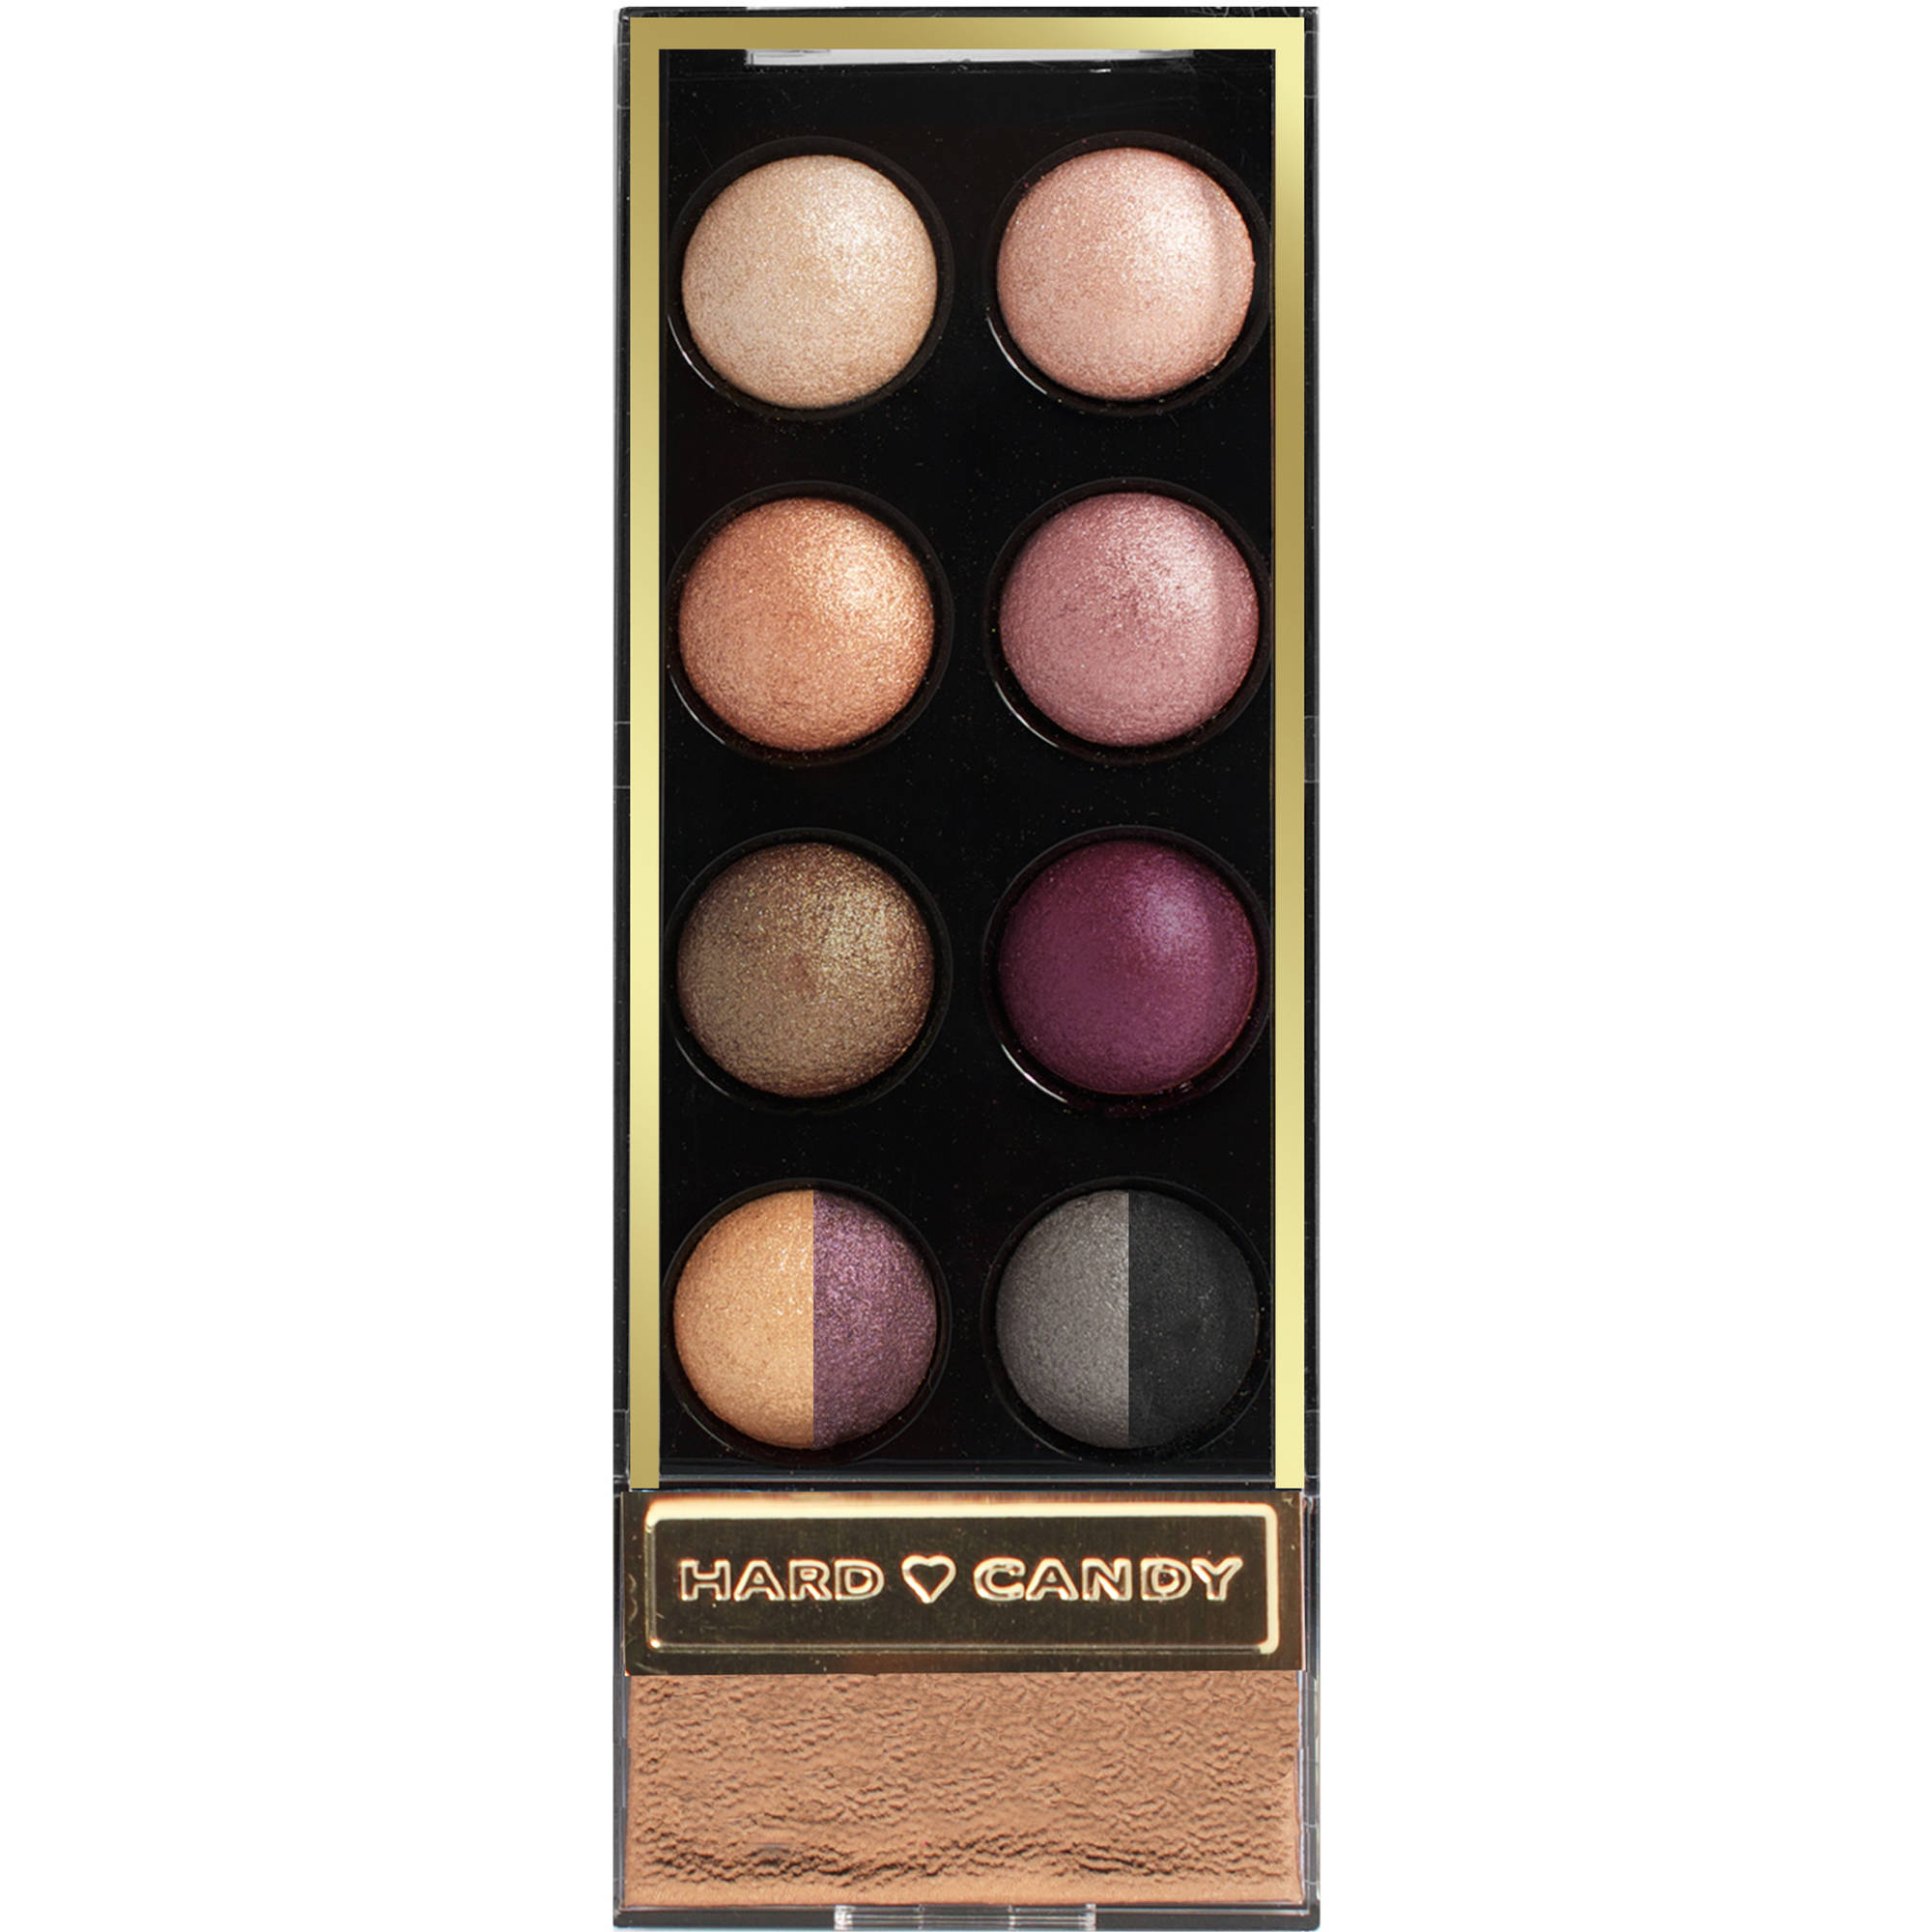 Hard Candy Super Mod Eye Shadow, Nudes n' Roses, 5.76 oz, Nude Pink